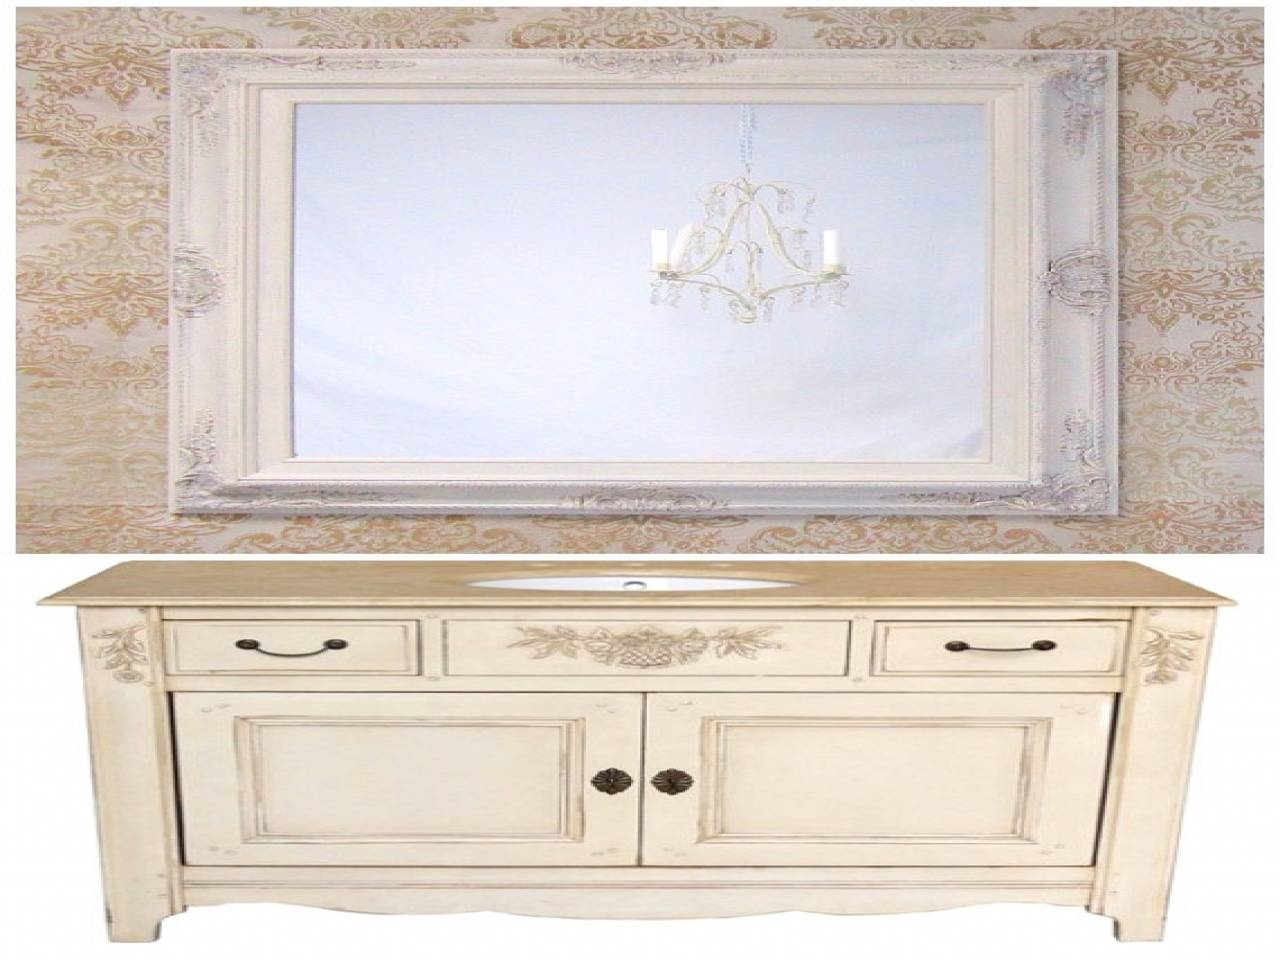 French Country Bathroom Vanities regarding French Bathroom Mirrors (Image 12 of 15)